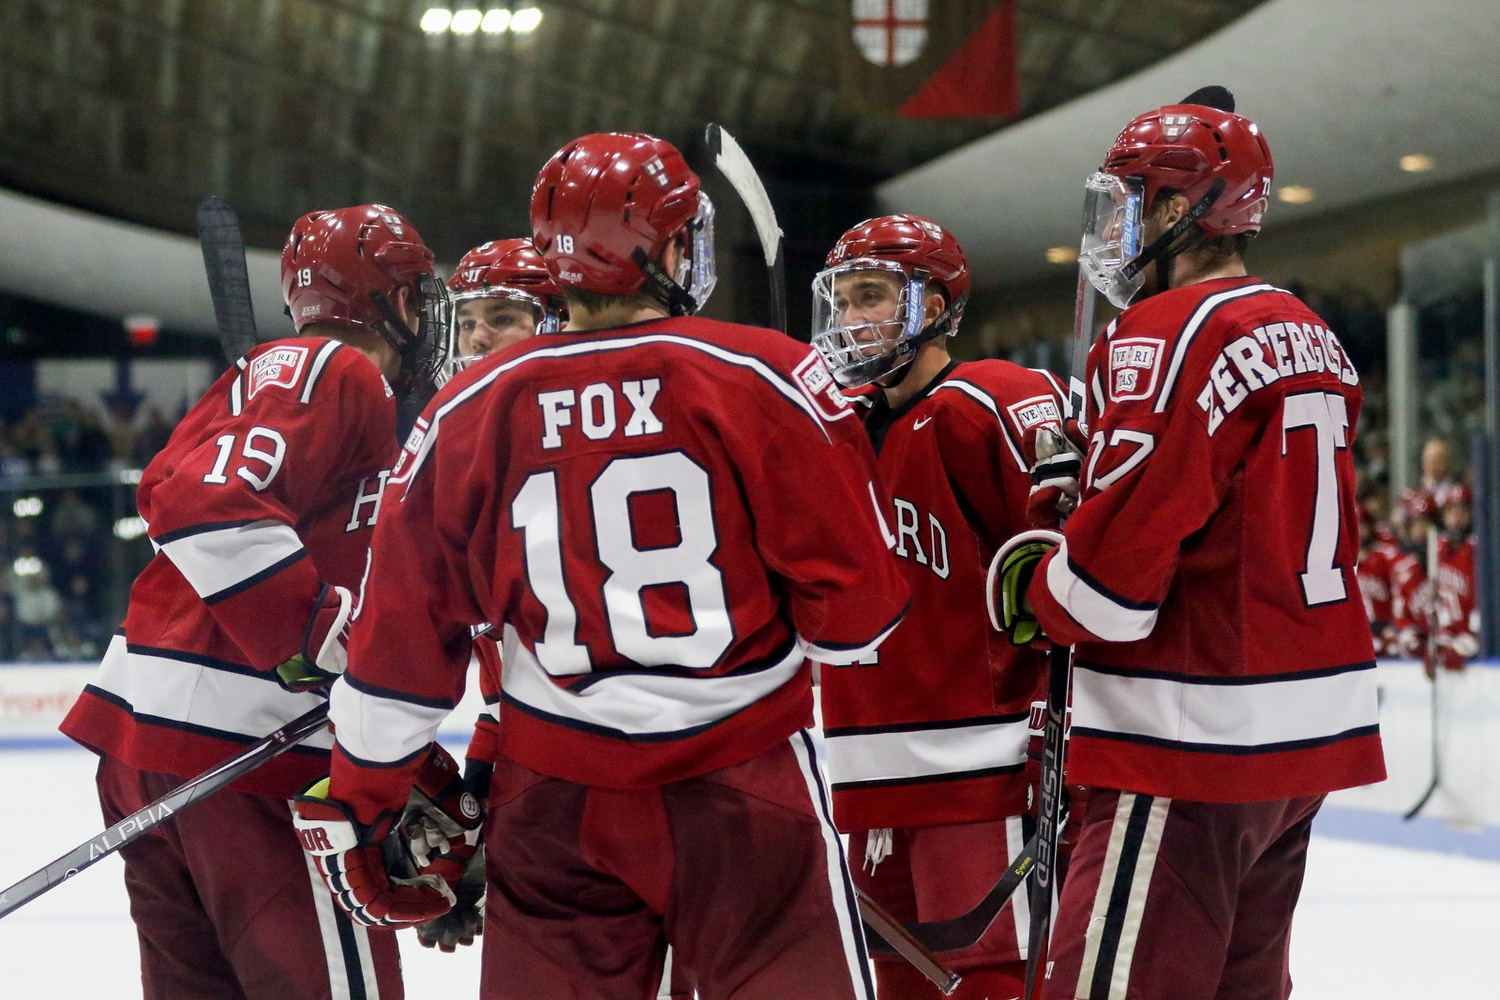 Entering the campaign, the Crimson faced questions about its roster due to both graduation and early NHL departures.